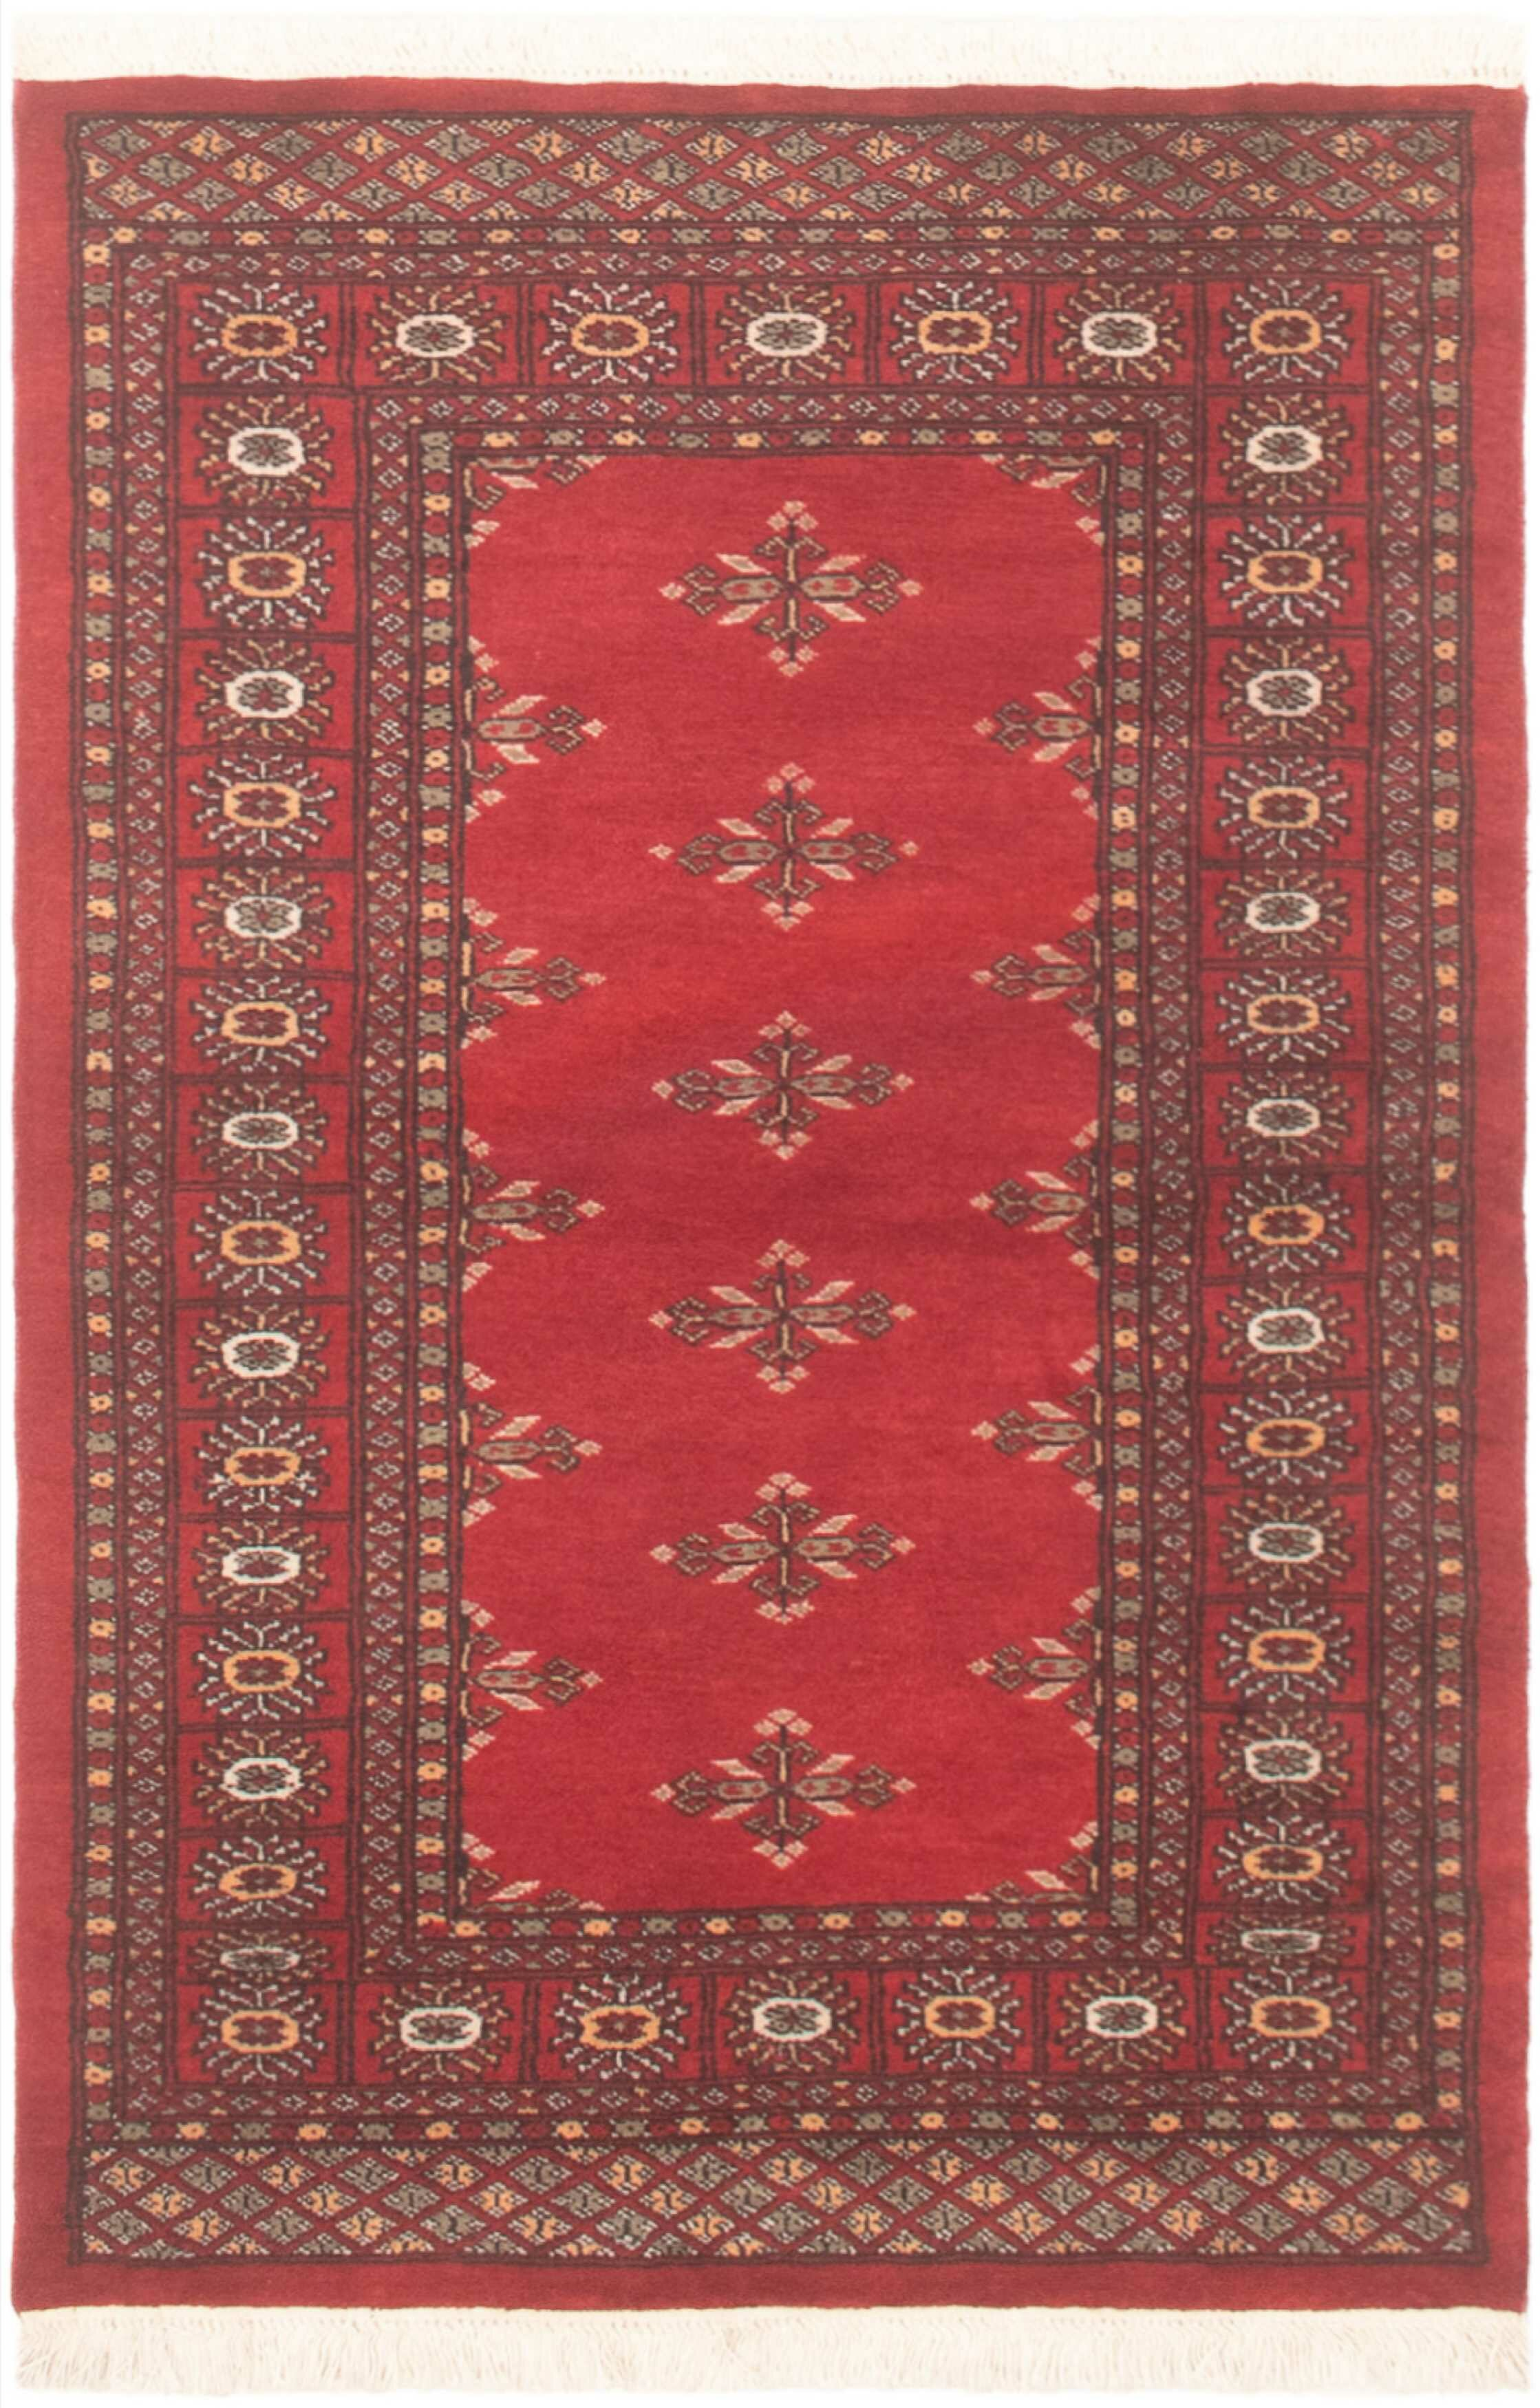 Bloomsbury Market One Of A Kind Melaina Hand Knotted 2010s Bokhara Red Brown 3 1 X 4 10 Wool Area Rug Wayfair